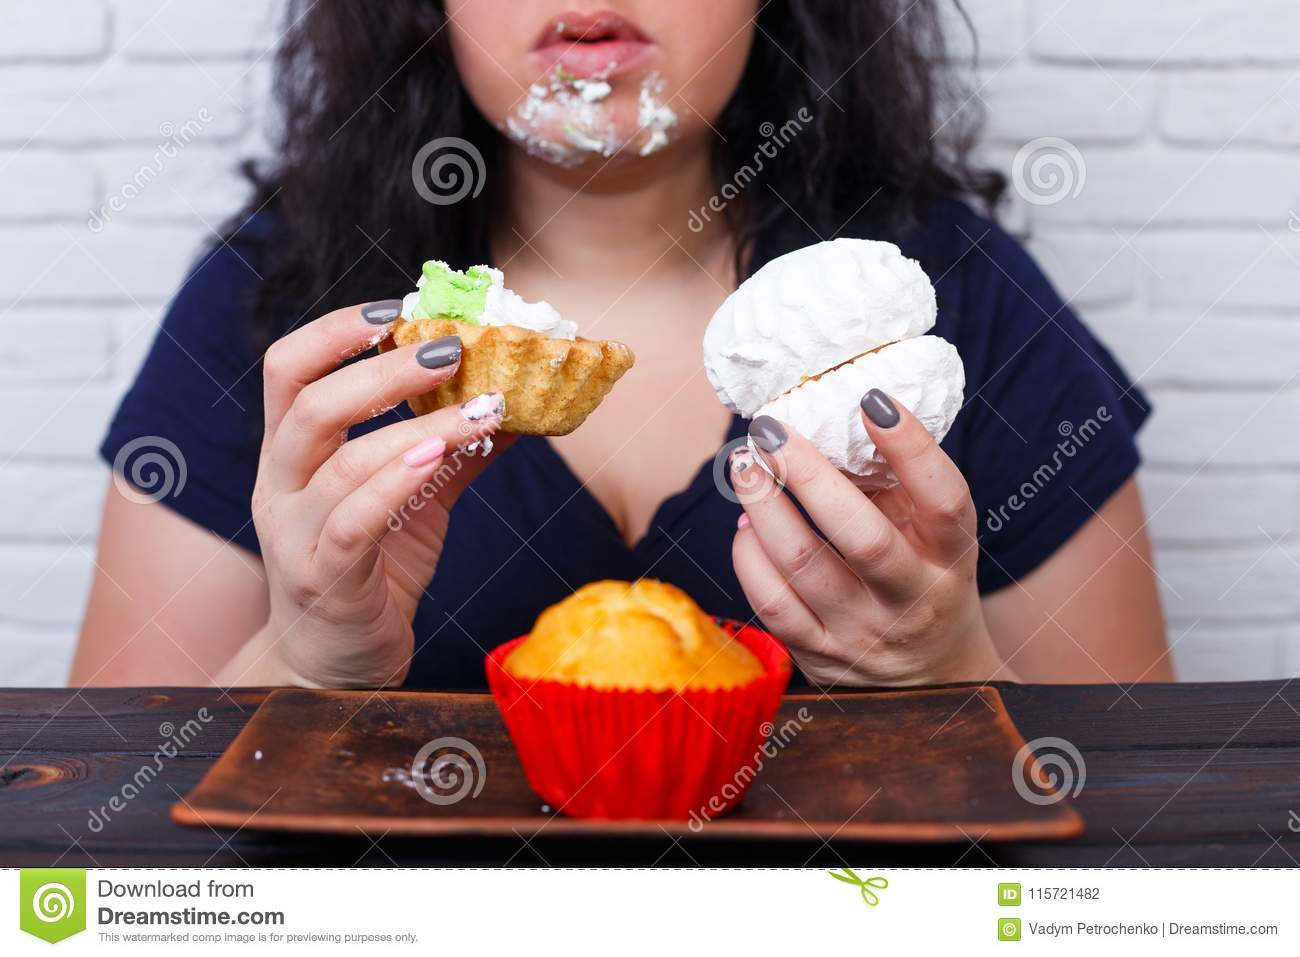 Food addiction, dieting concept. Young overweight woman fed up w